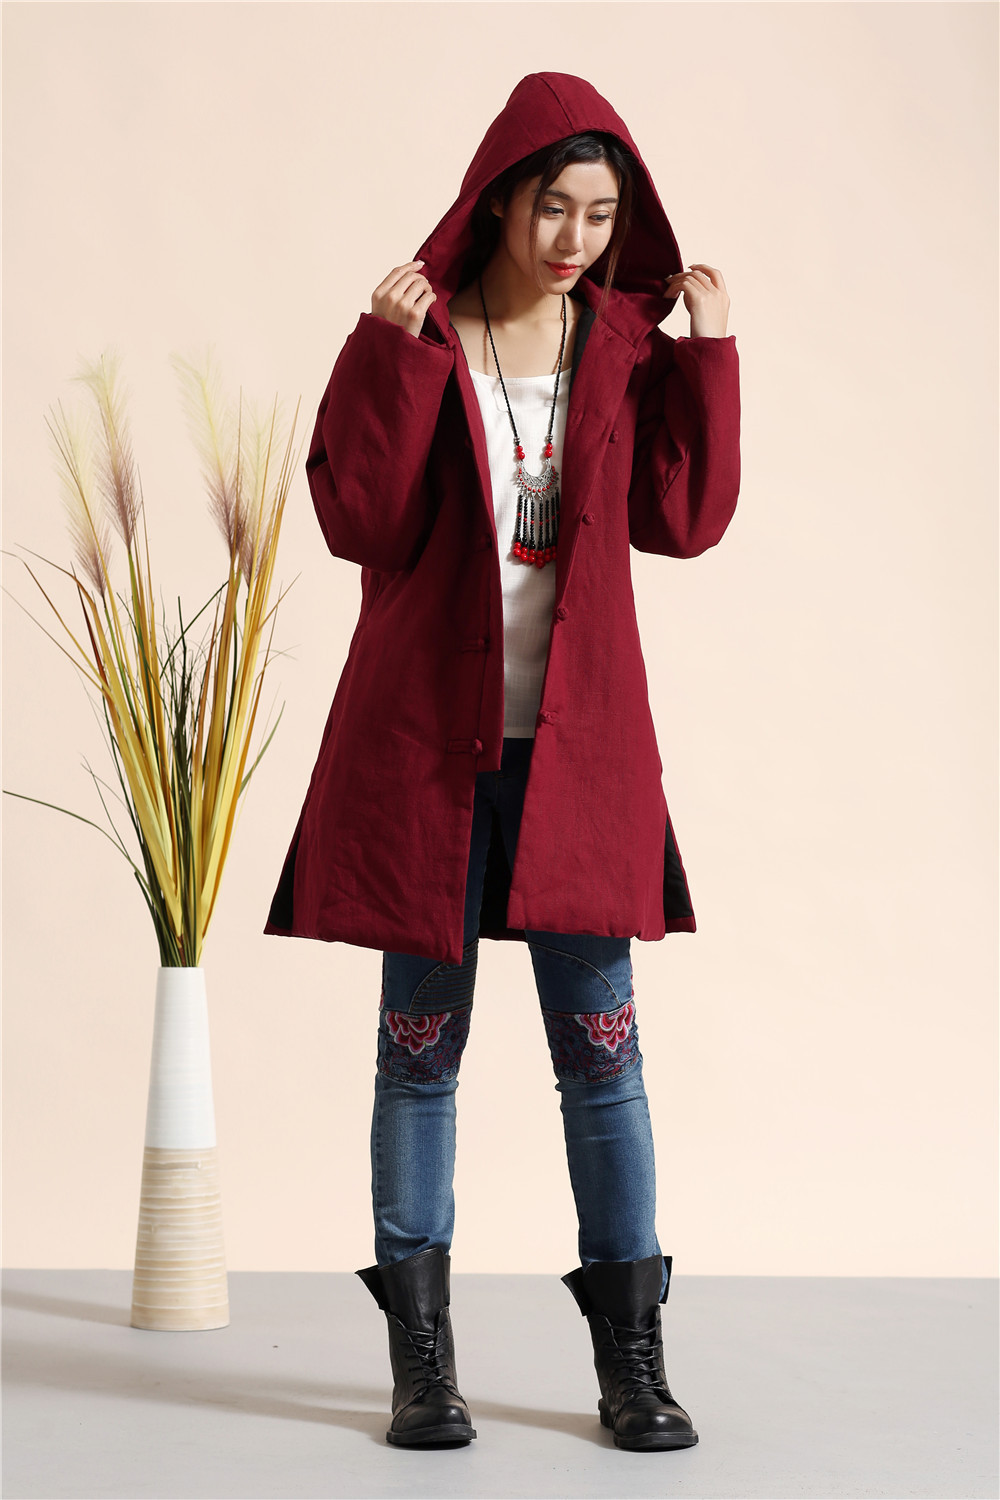 Women Winter Coat  Down Jackets cotton linen Long Cotton-Padded Clothes hooded Coats Parkas Casual Parka Wadded 3Colors 3sizes